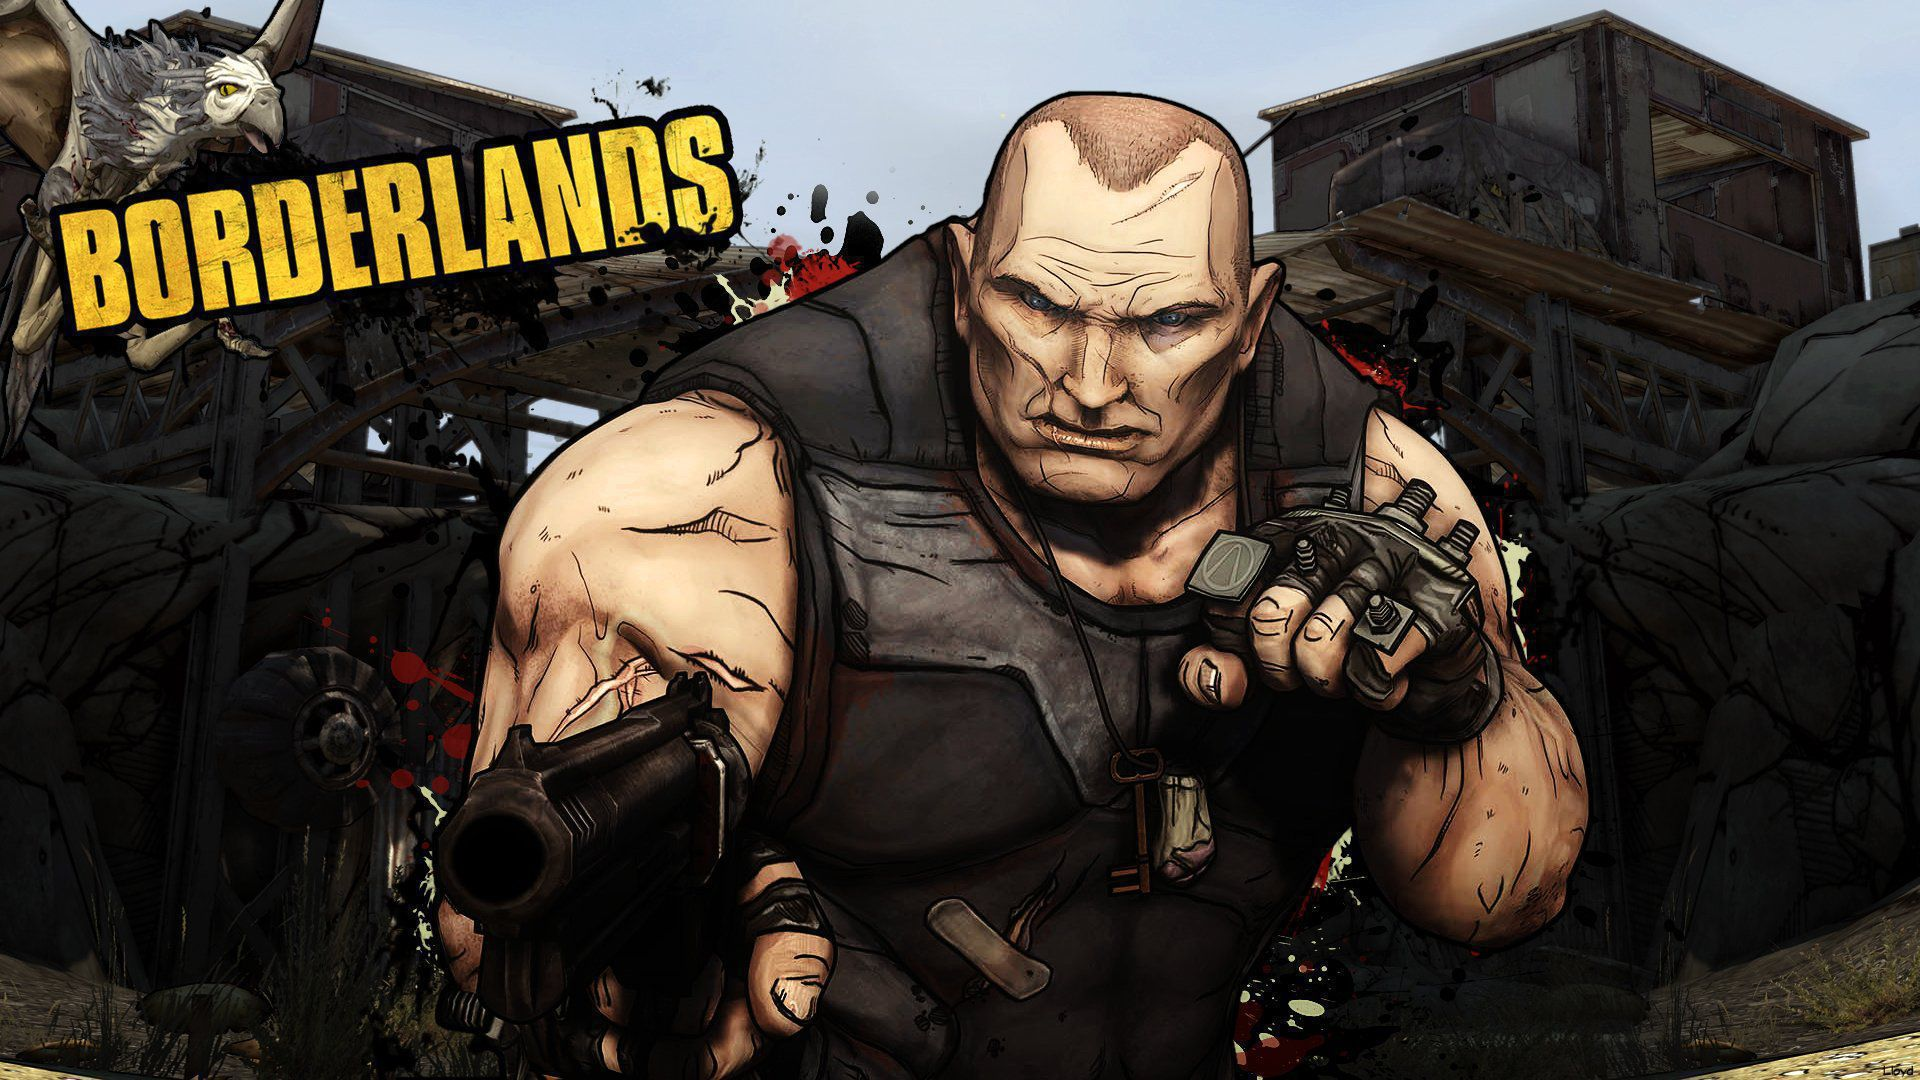 Borderlands HD Wallpaper